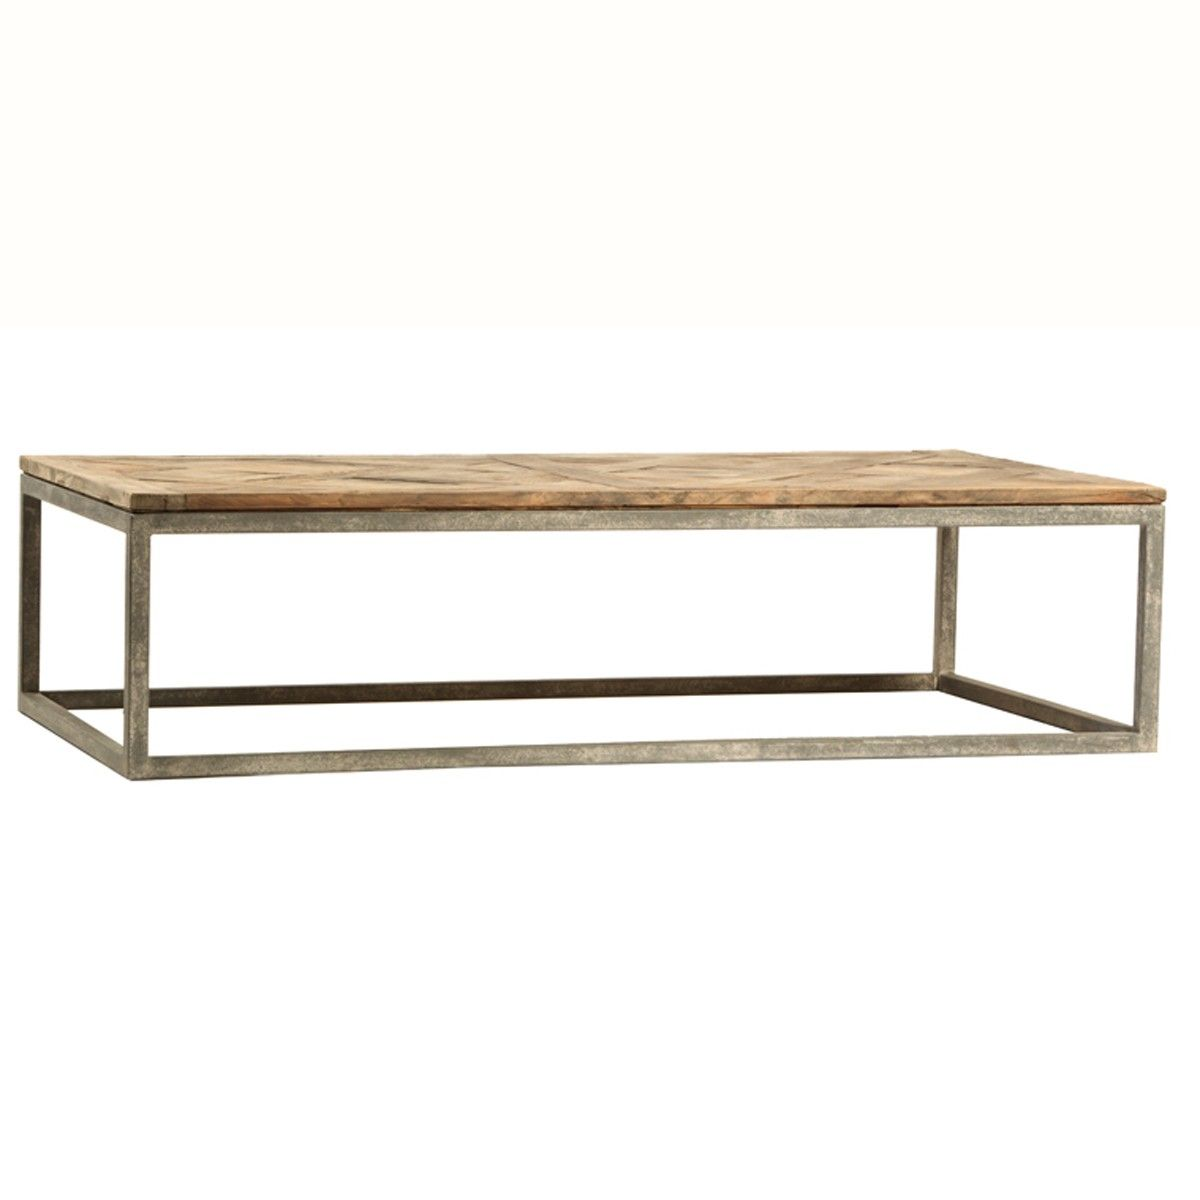 "MATHIS COFFEE TABLE BR BR • 63""L x 16""H x 36""D BR • Reclaimed"